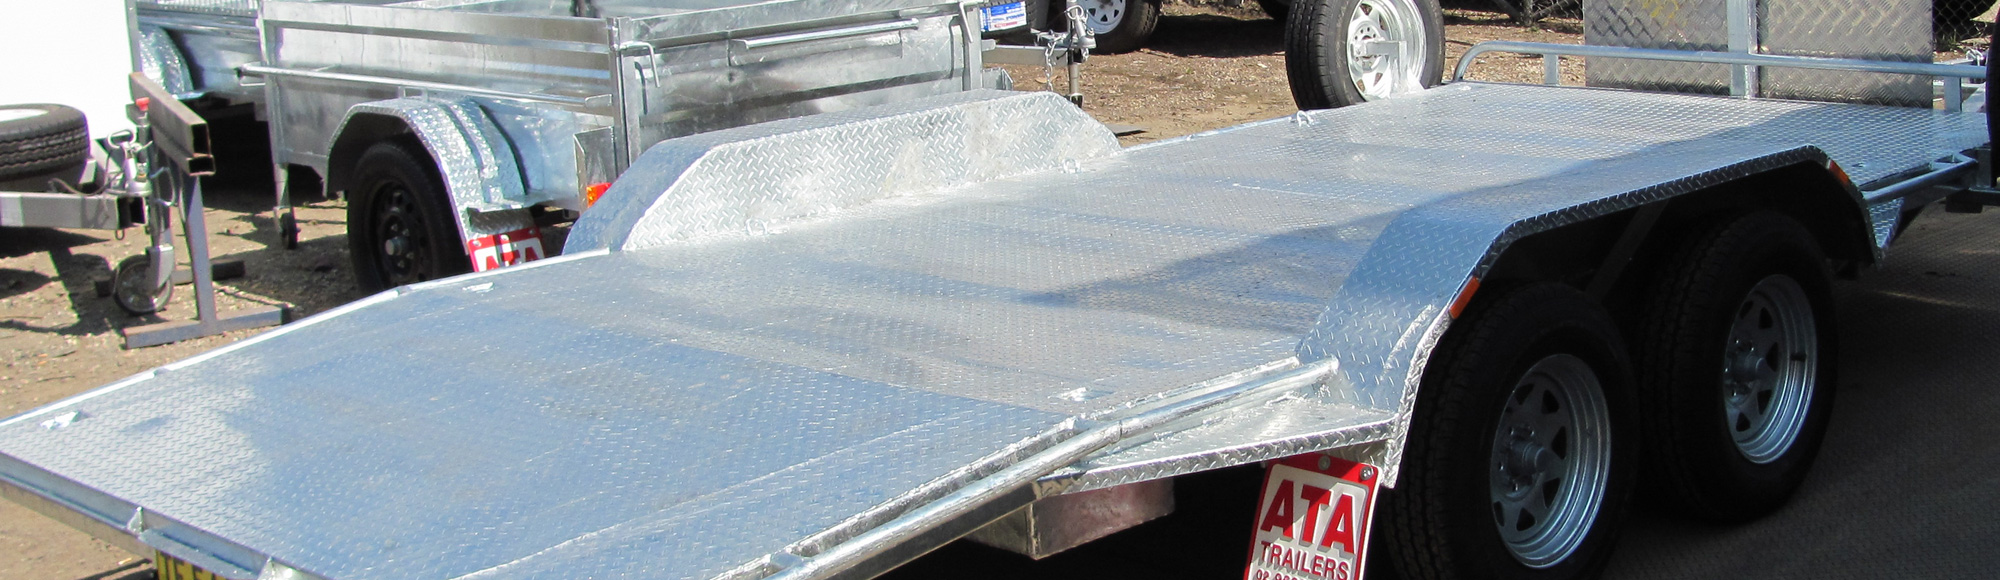 Galvanised Trailers Sydney